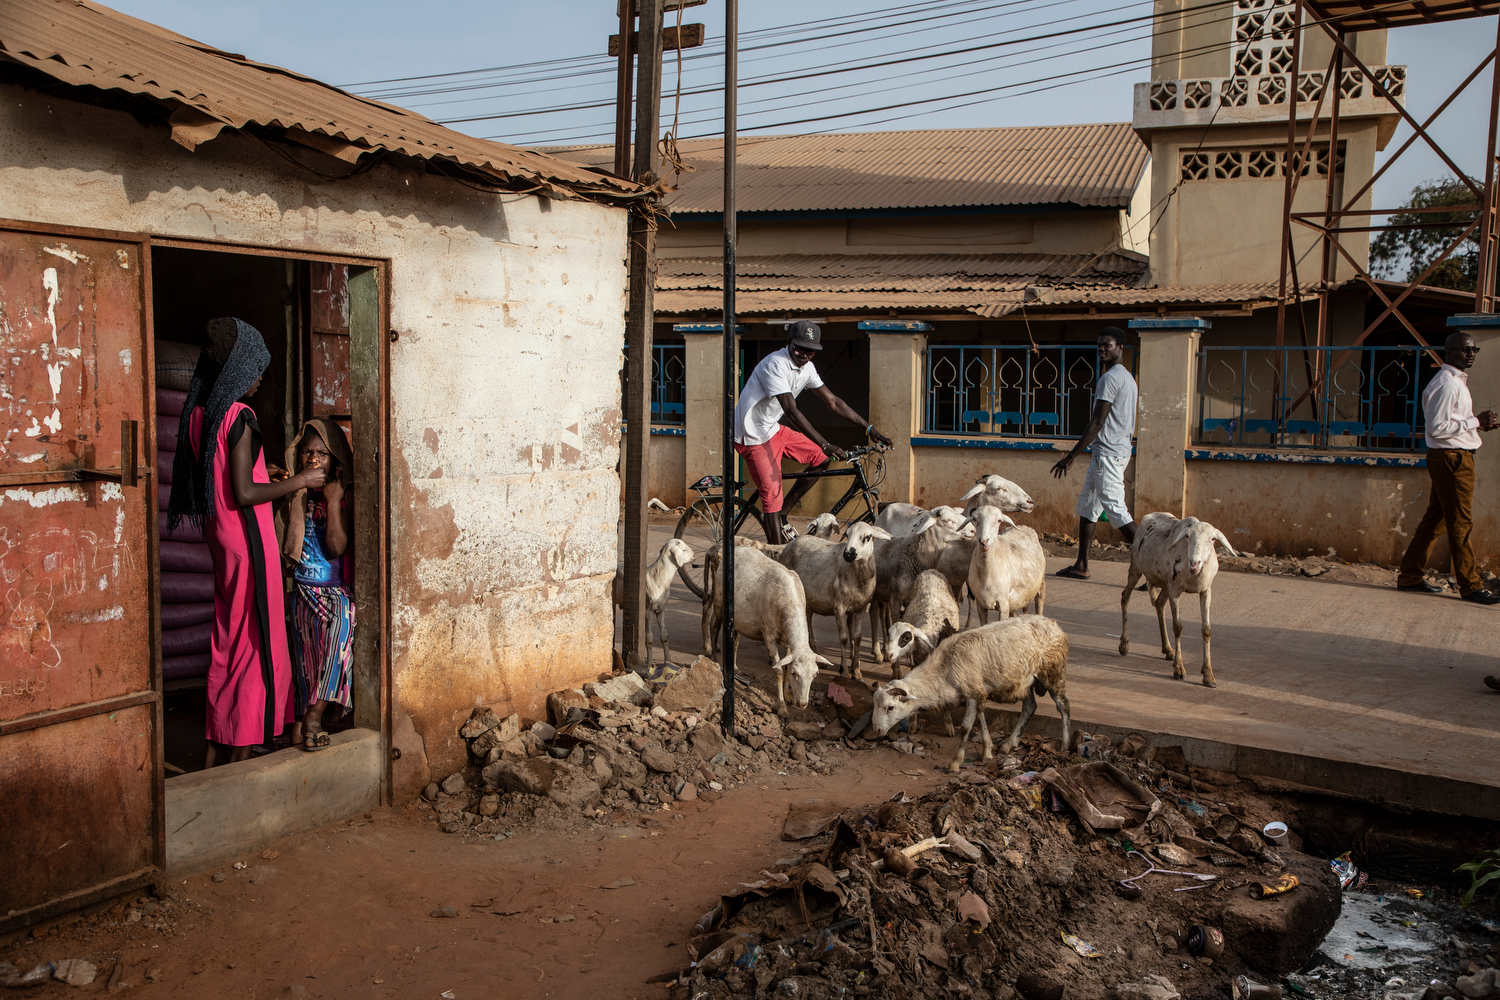 Sheep scavenge across the street from a borehole located on the grounds of a mosque.